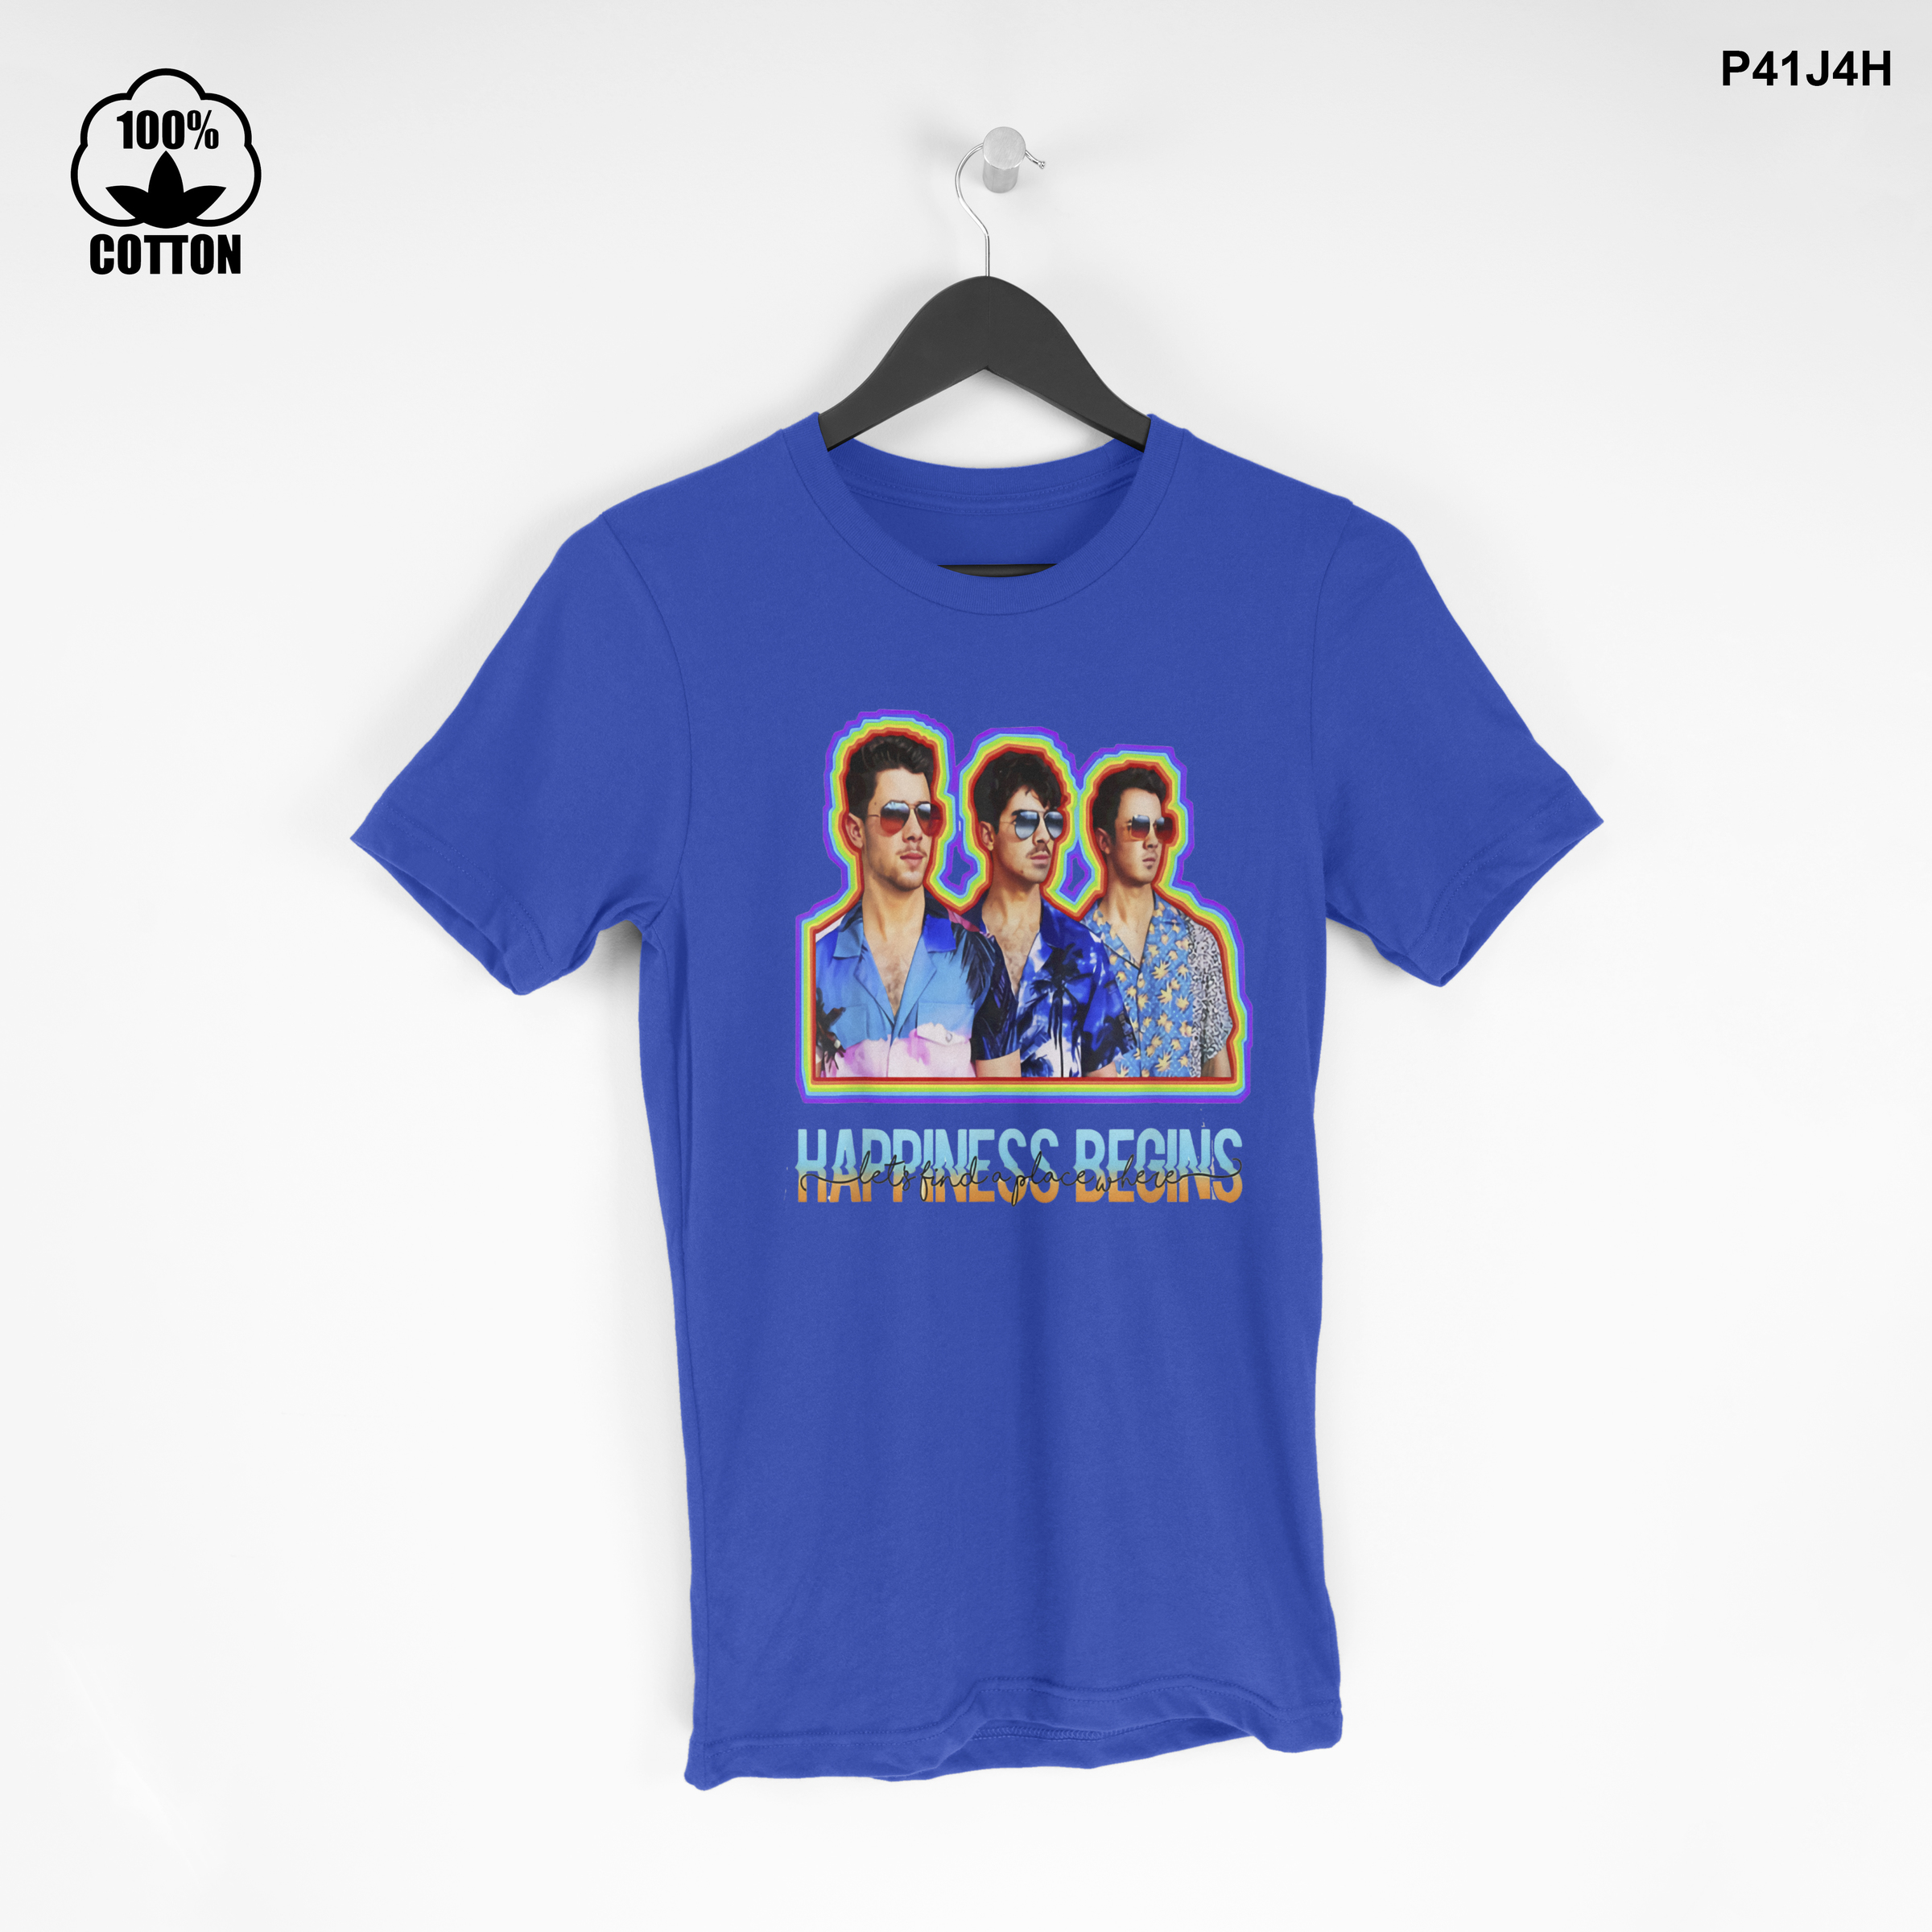 LIMITED EDITION!! Jonas Brothers Happiness T SHIRT TEE BEST GIVE Dodger Blue.jpg